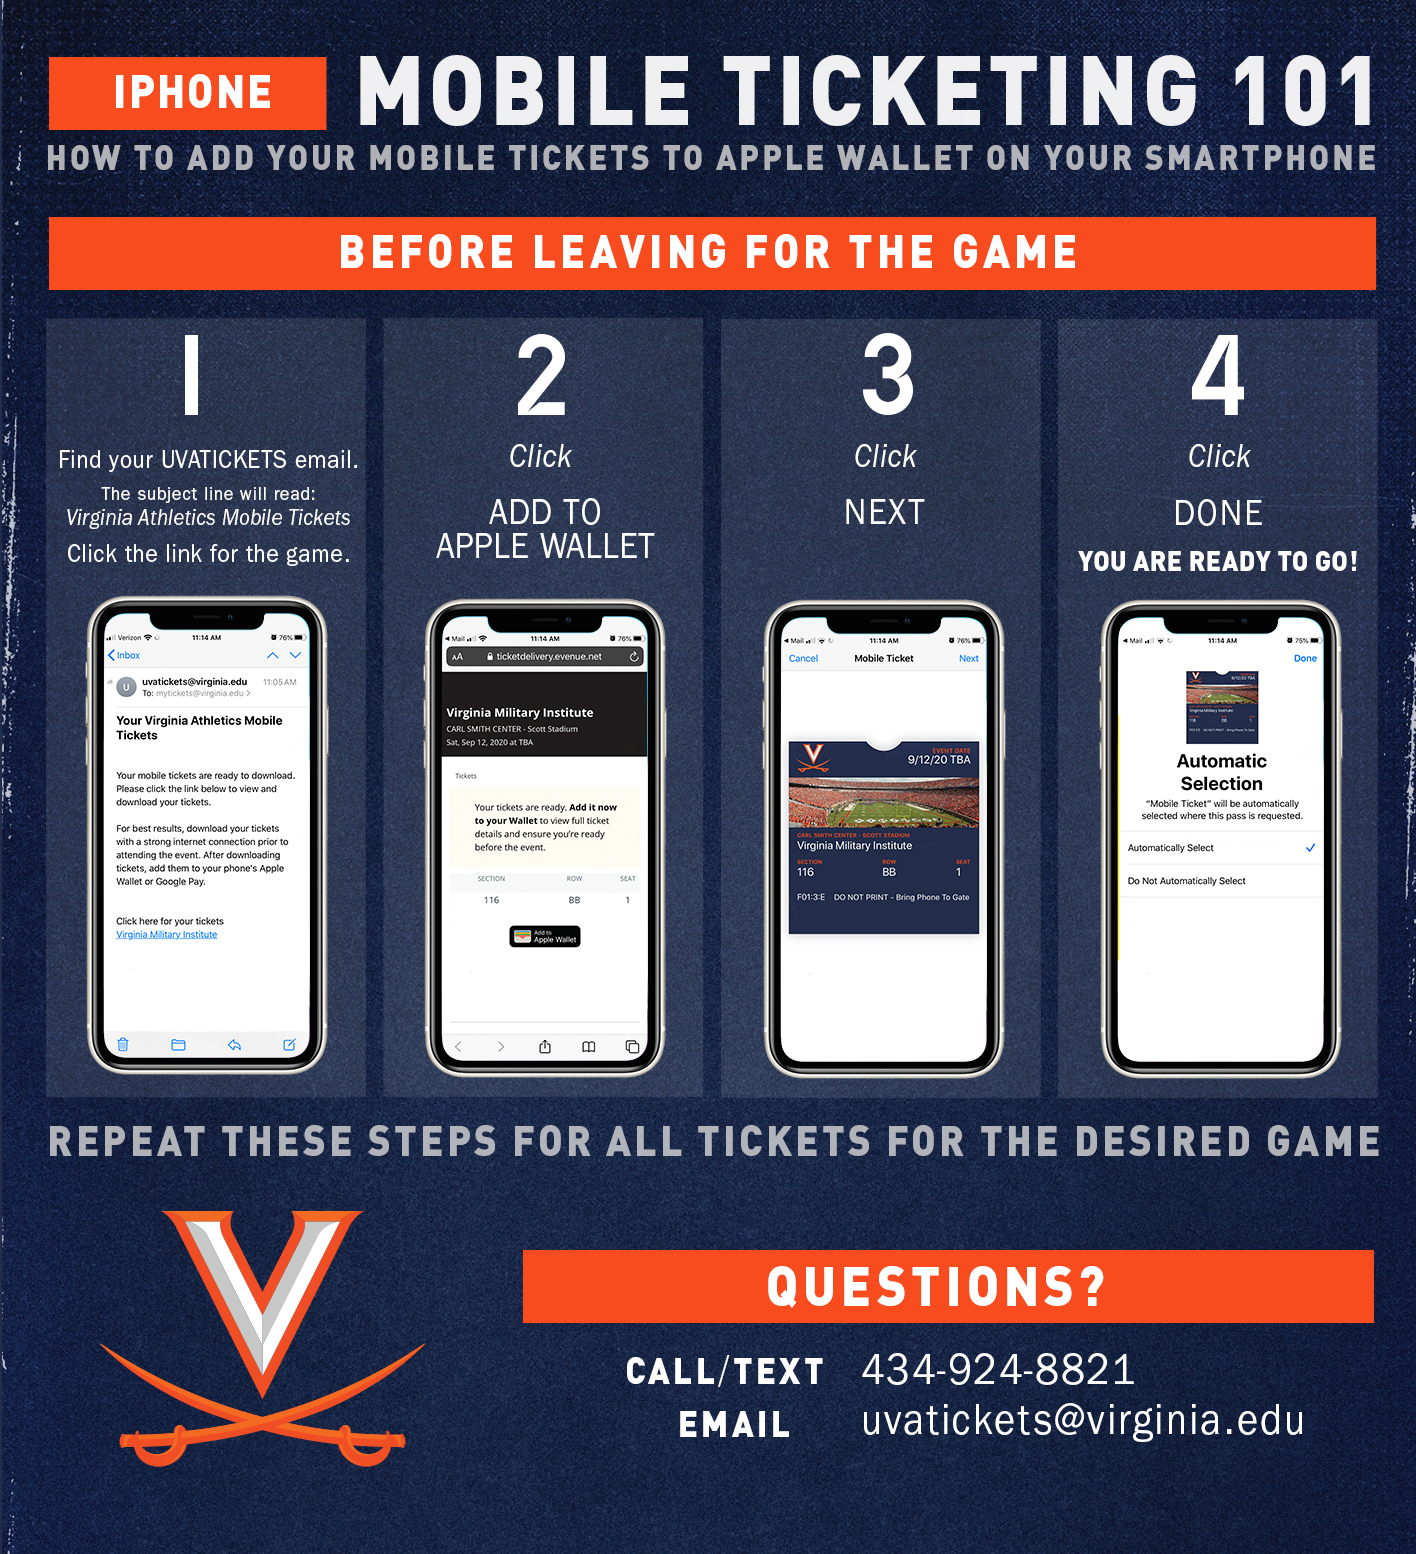 Mobile ticketing instructions for iPhone users